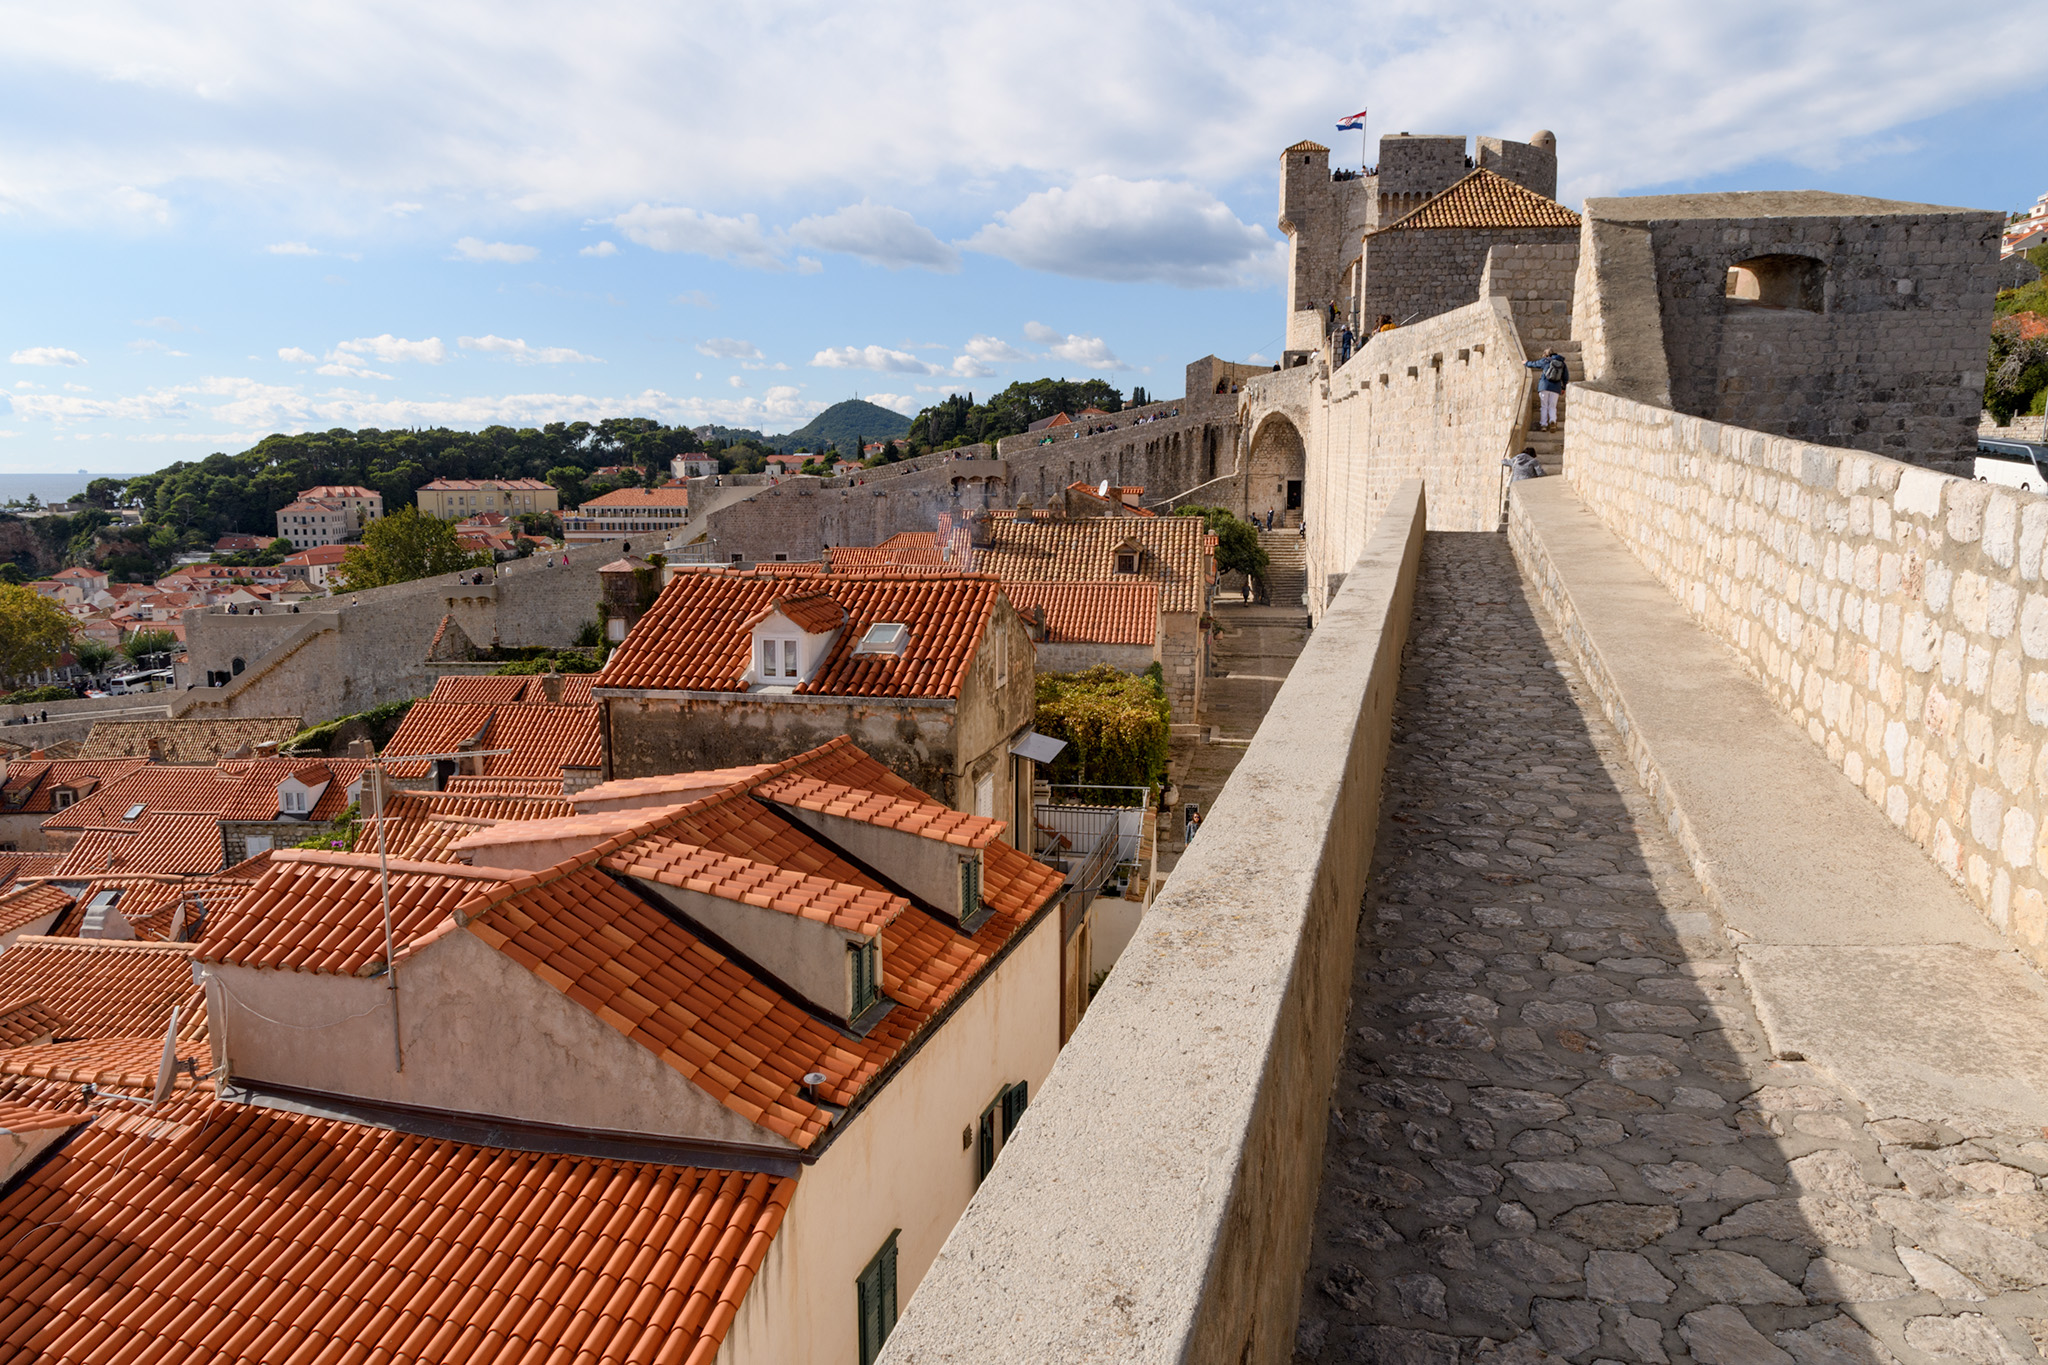 The walls above the red tile roof Old Town